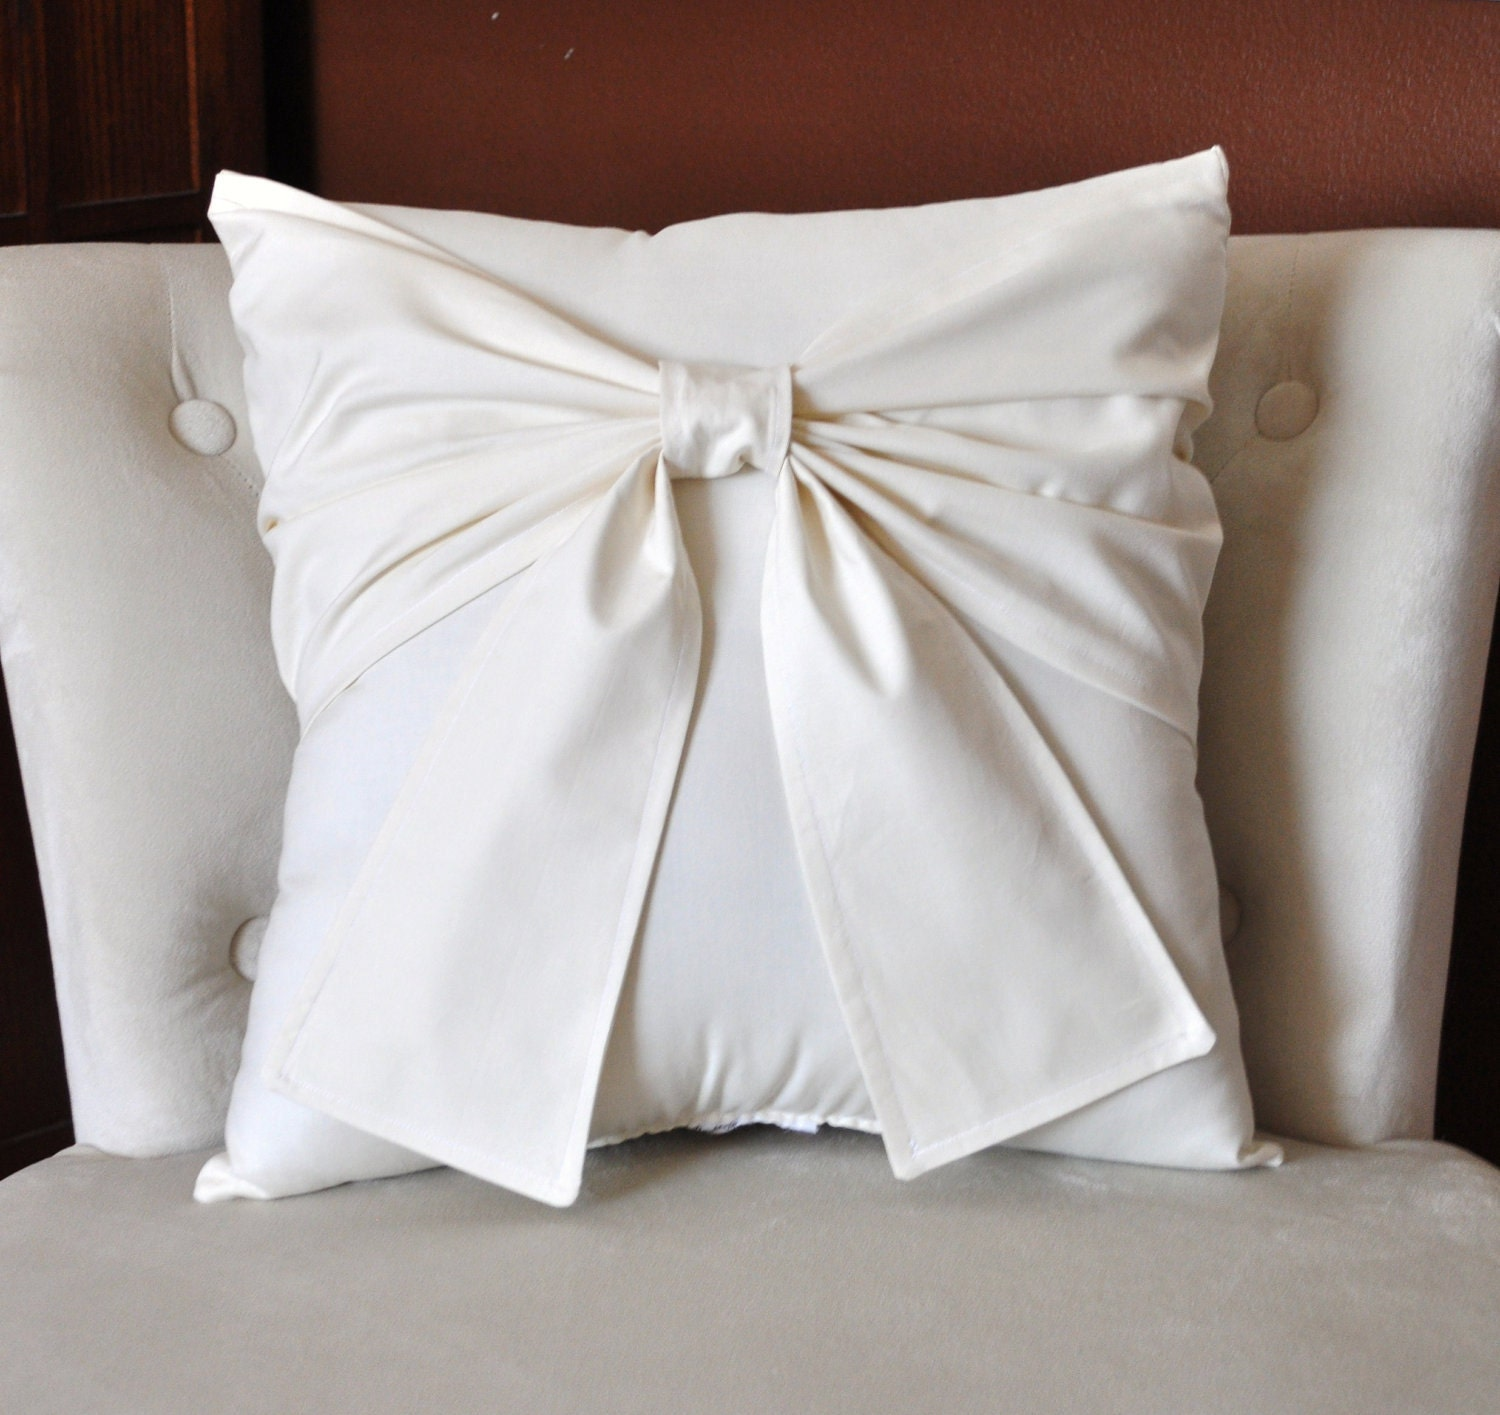 Decorative Pillow With Bow : Cream Bow Pillow Decorative Pillow